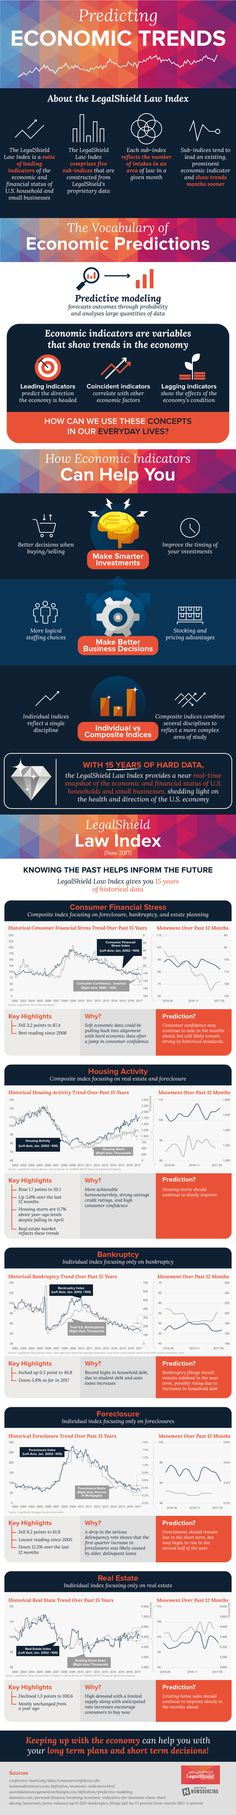 LegalShield Law Index | LegalShield